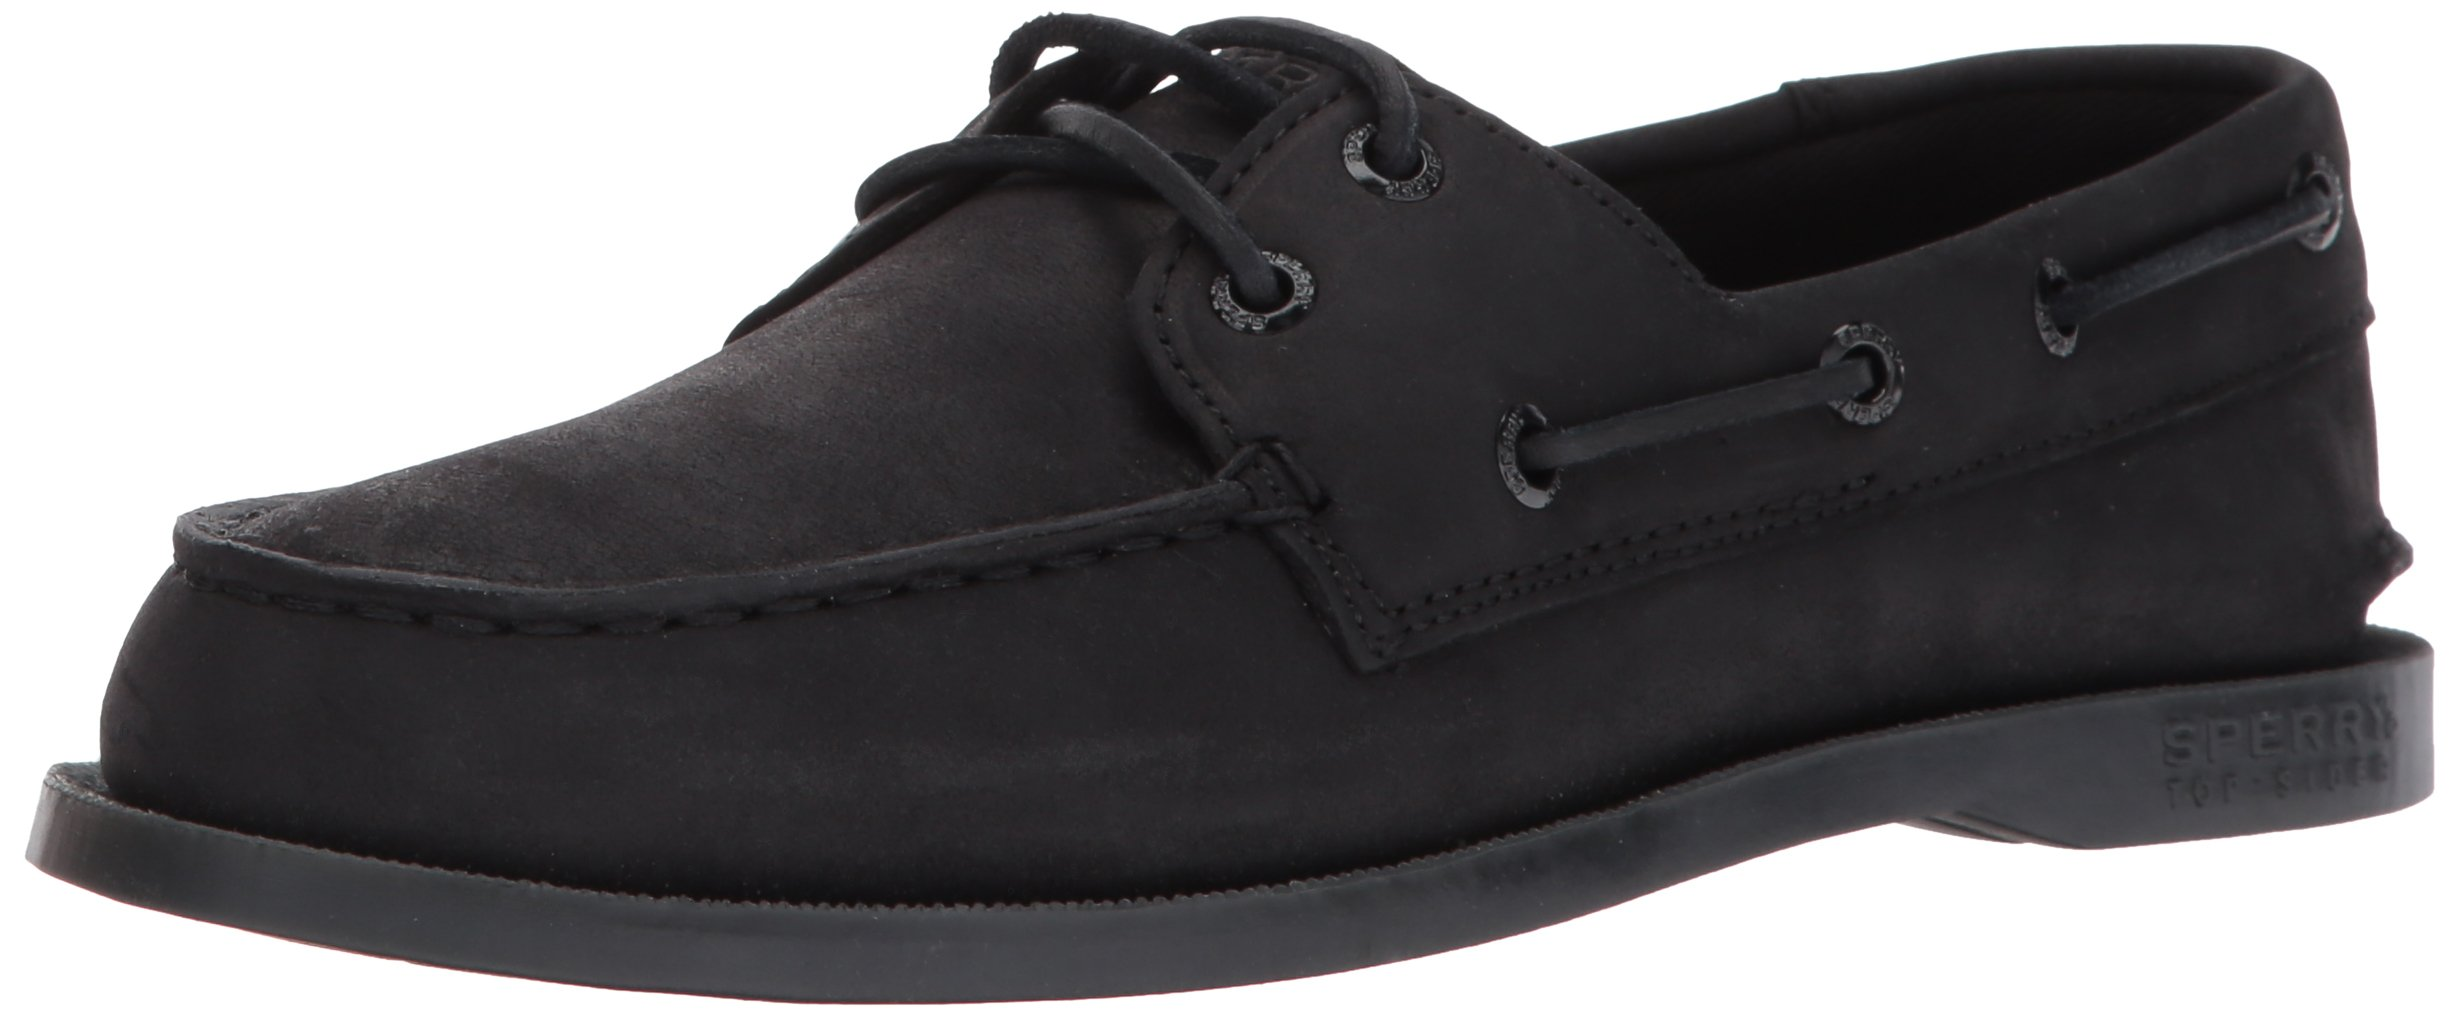 Sperry Top-Sider Kids' Authentic Original Boat Shoe